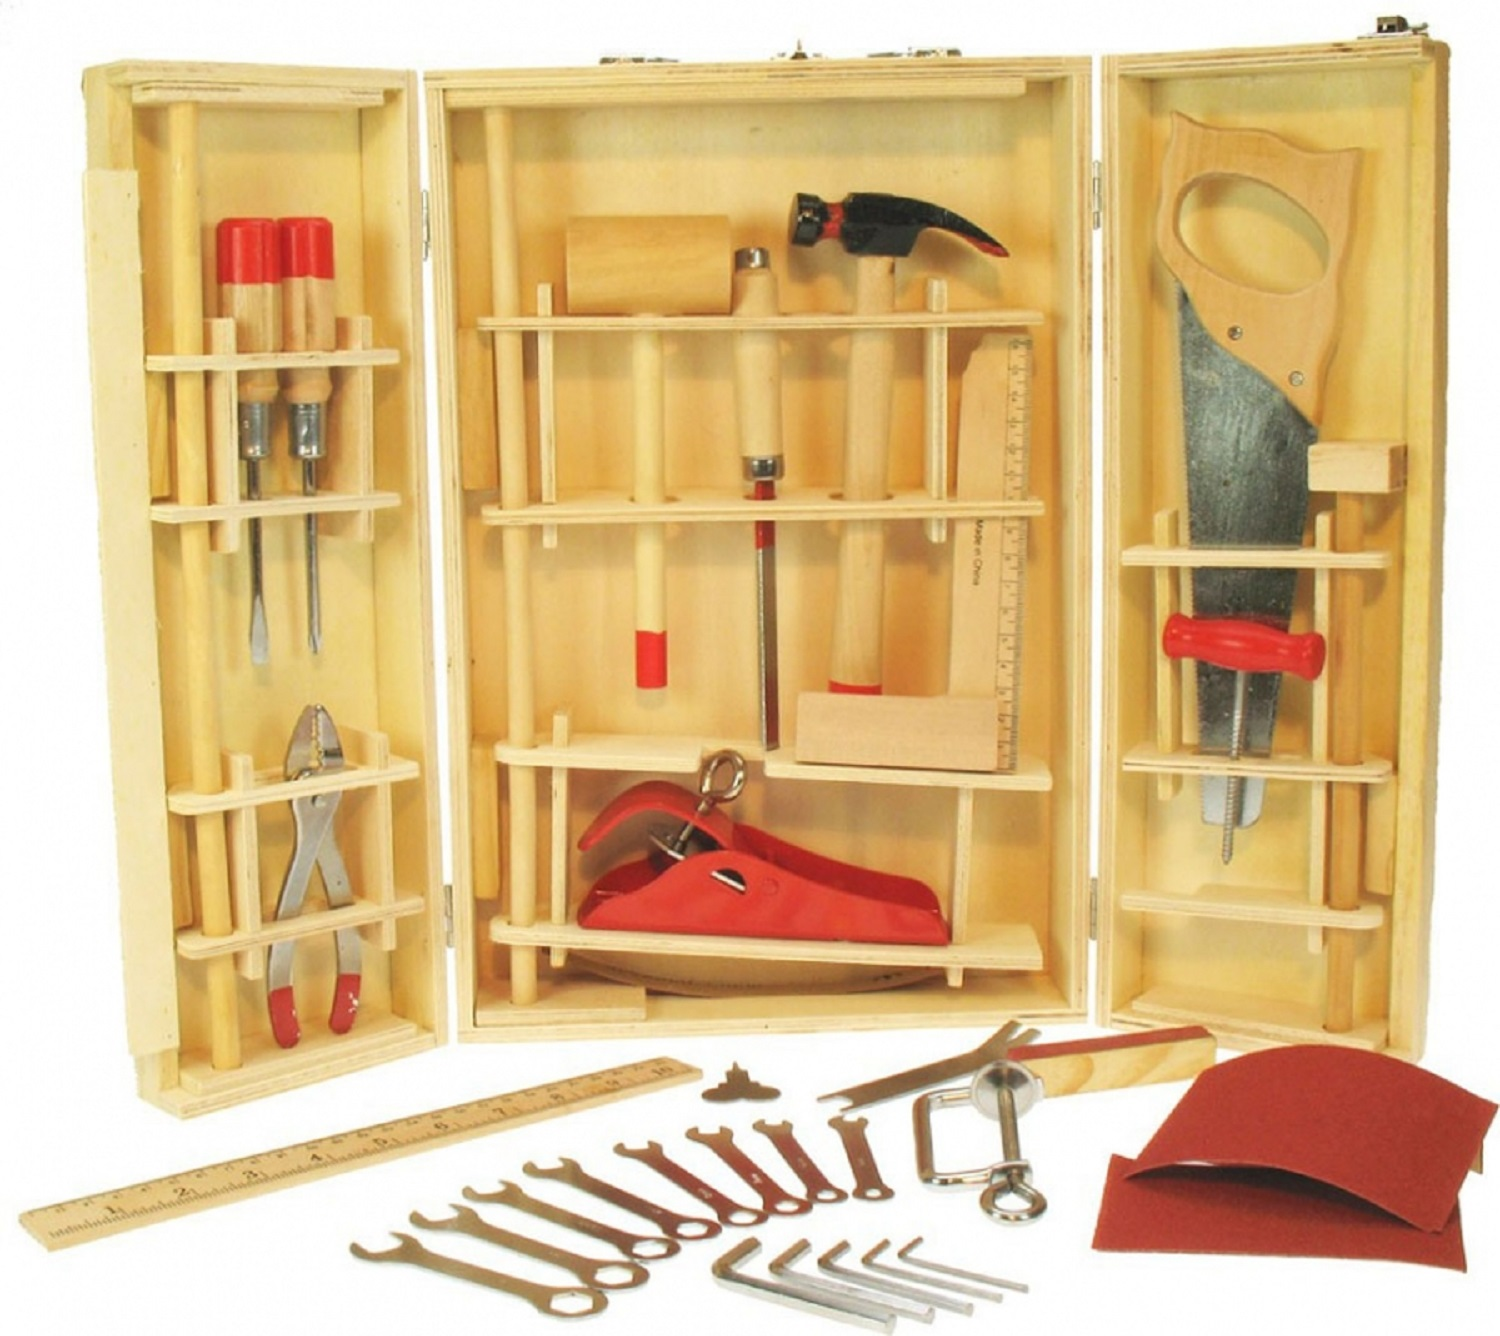 Children's Professional Carpentry Tools, Children's Tool Set, Woodwork ...